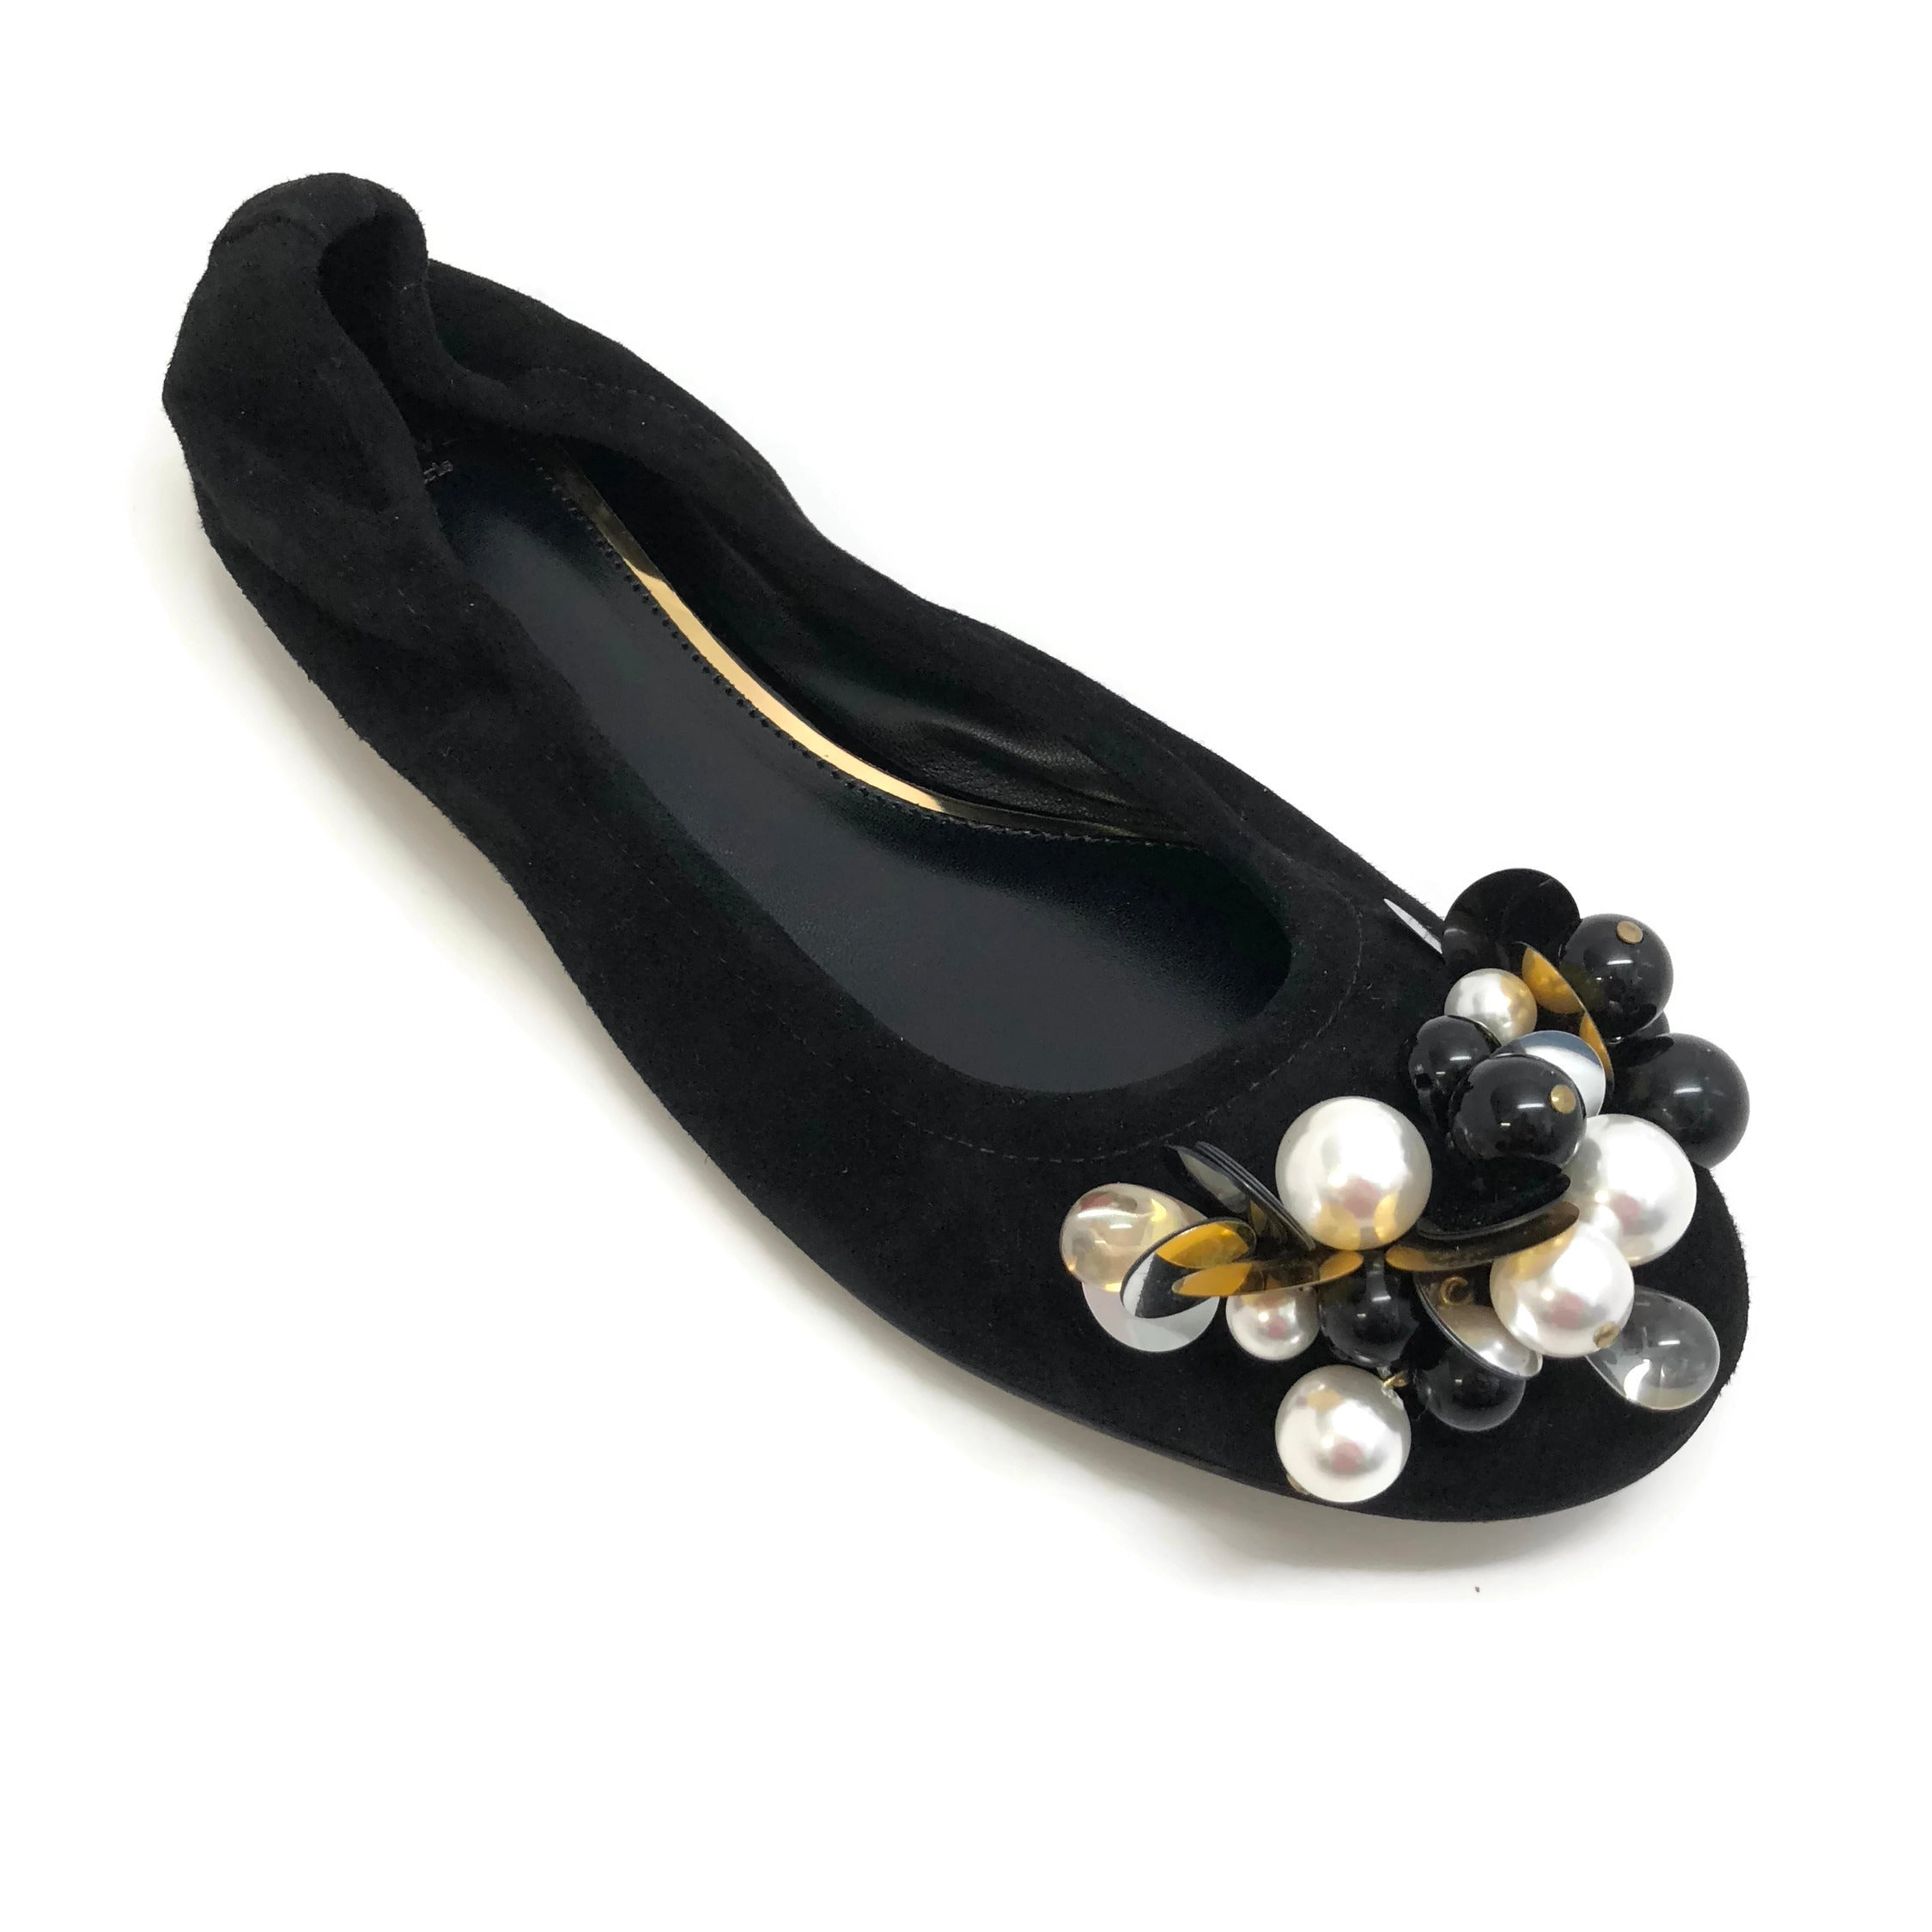 Lanvin Black Pearl Embellished Slipper Flats